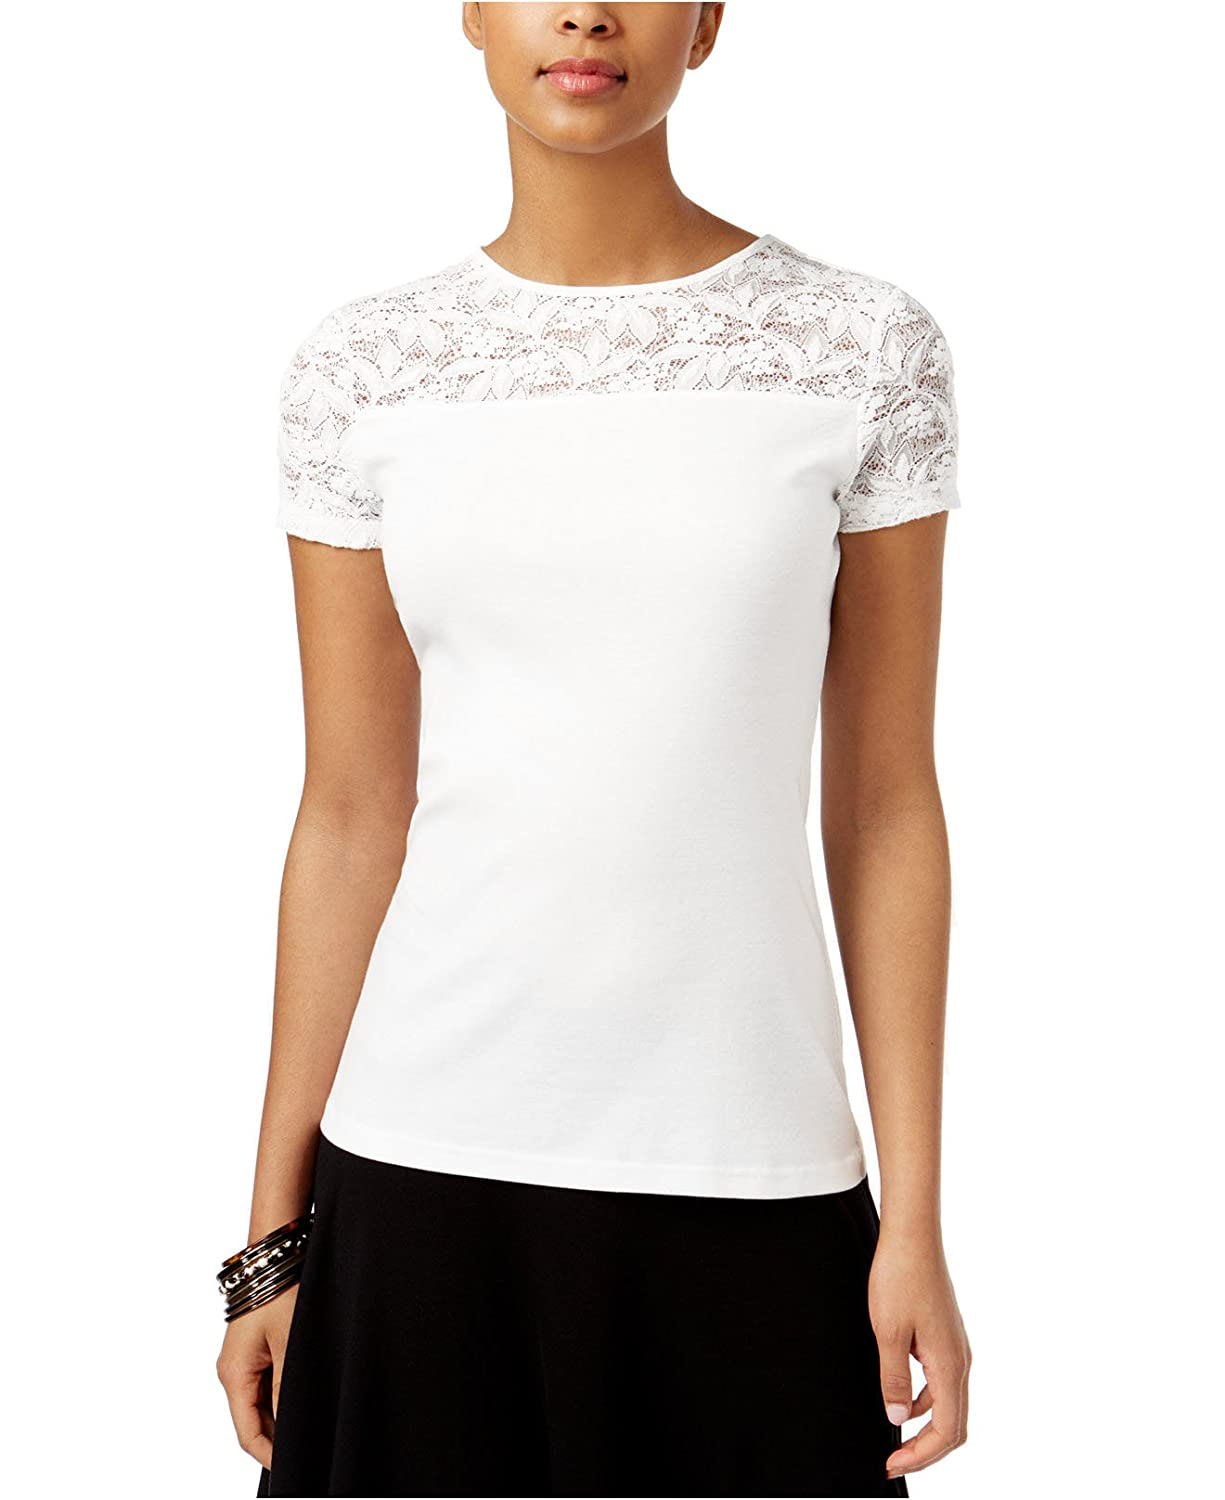 American Living Womens Short Sleeve Lace Yoke Top Small White At